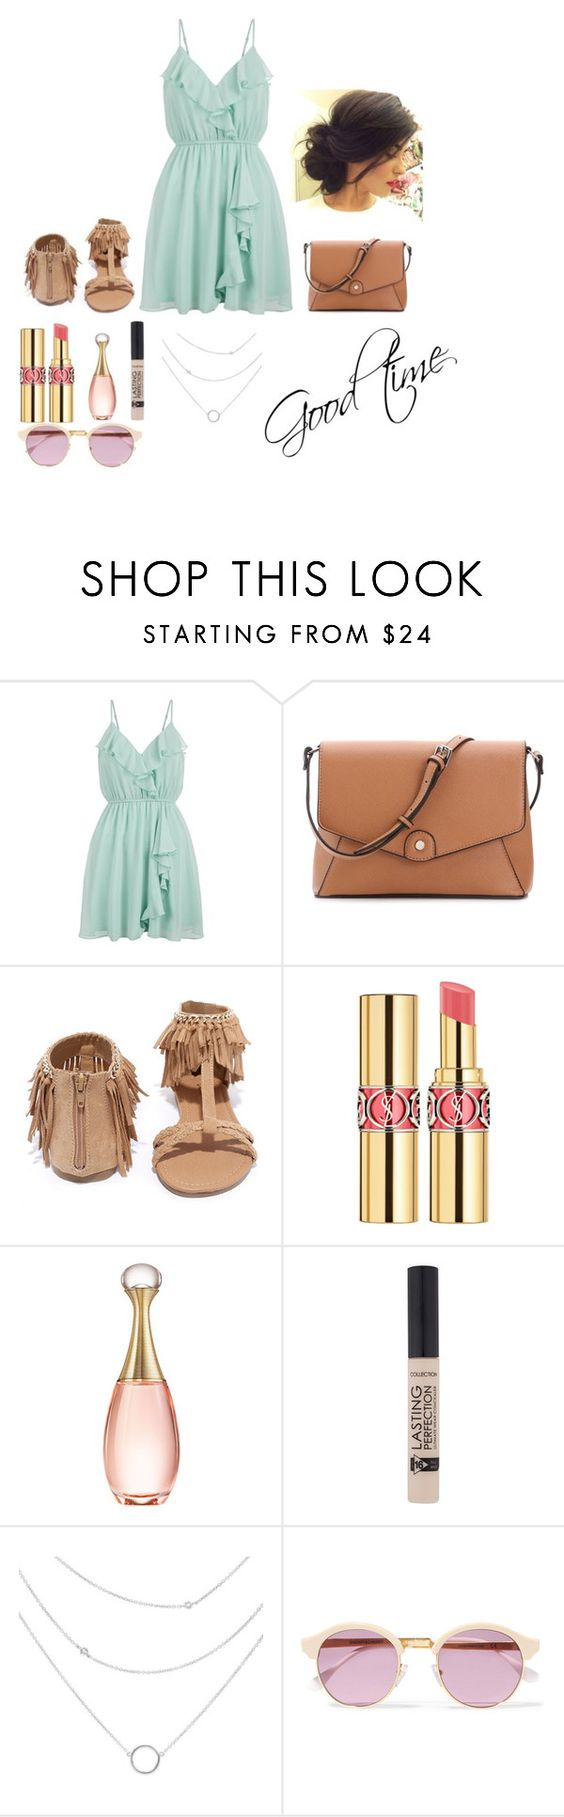 """""""good time"""" by aillwen ❤ liked on Polyvore featuring New Look, Qupid, Yves Saint Laurent, Christian Dior and Sheriff&Cherry"""